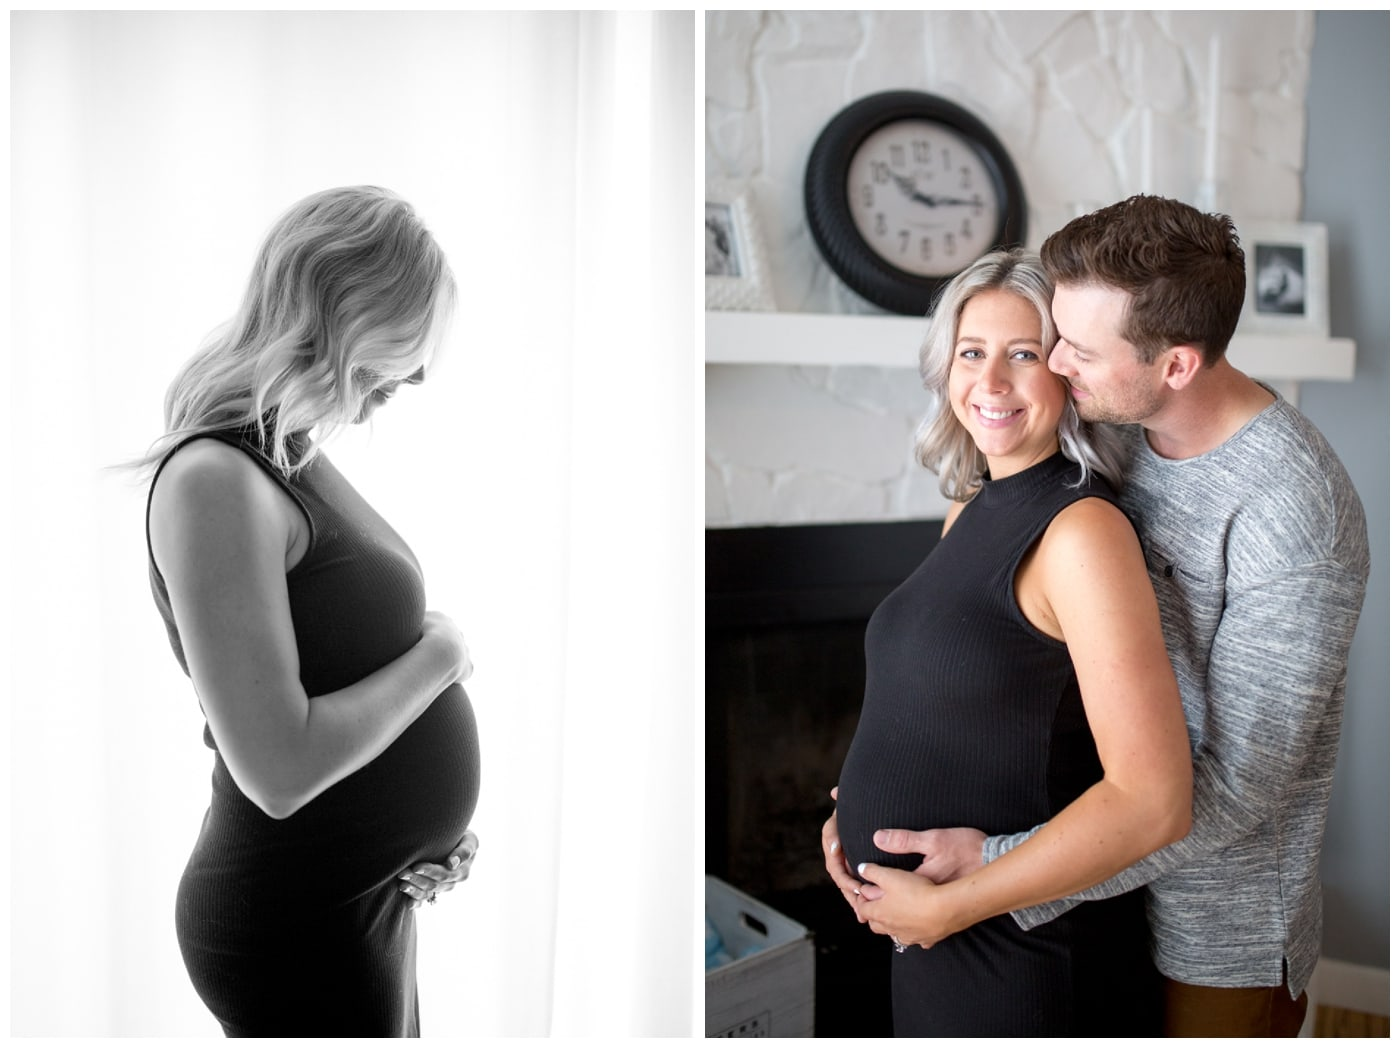 A pregnant mother stands backlit against a window in the black tank top, and a maternity shoot of a husband and wife in front of a white fireplace